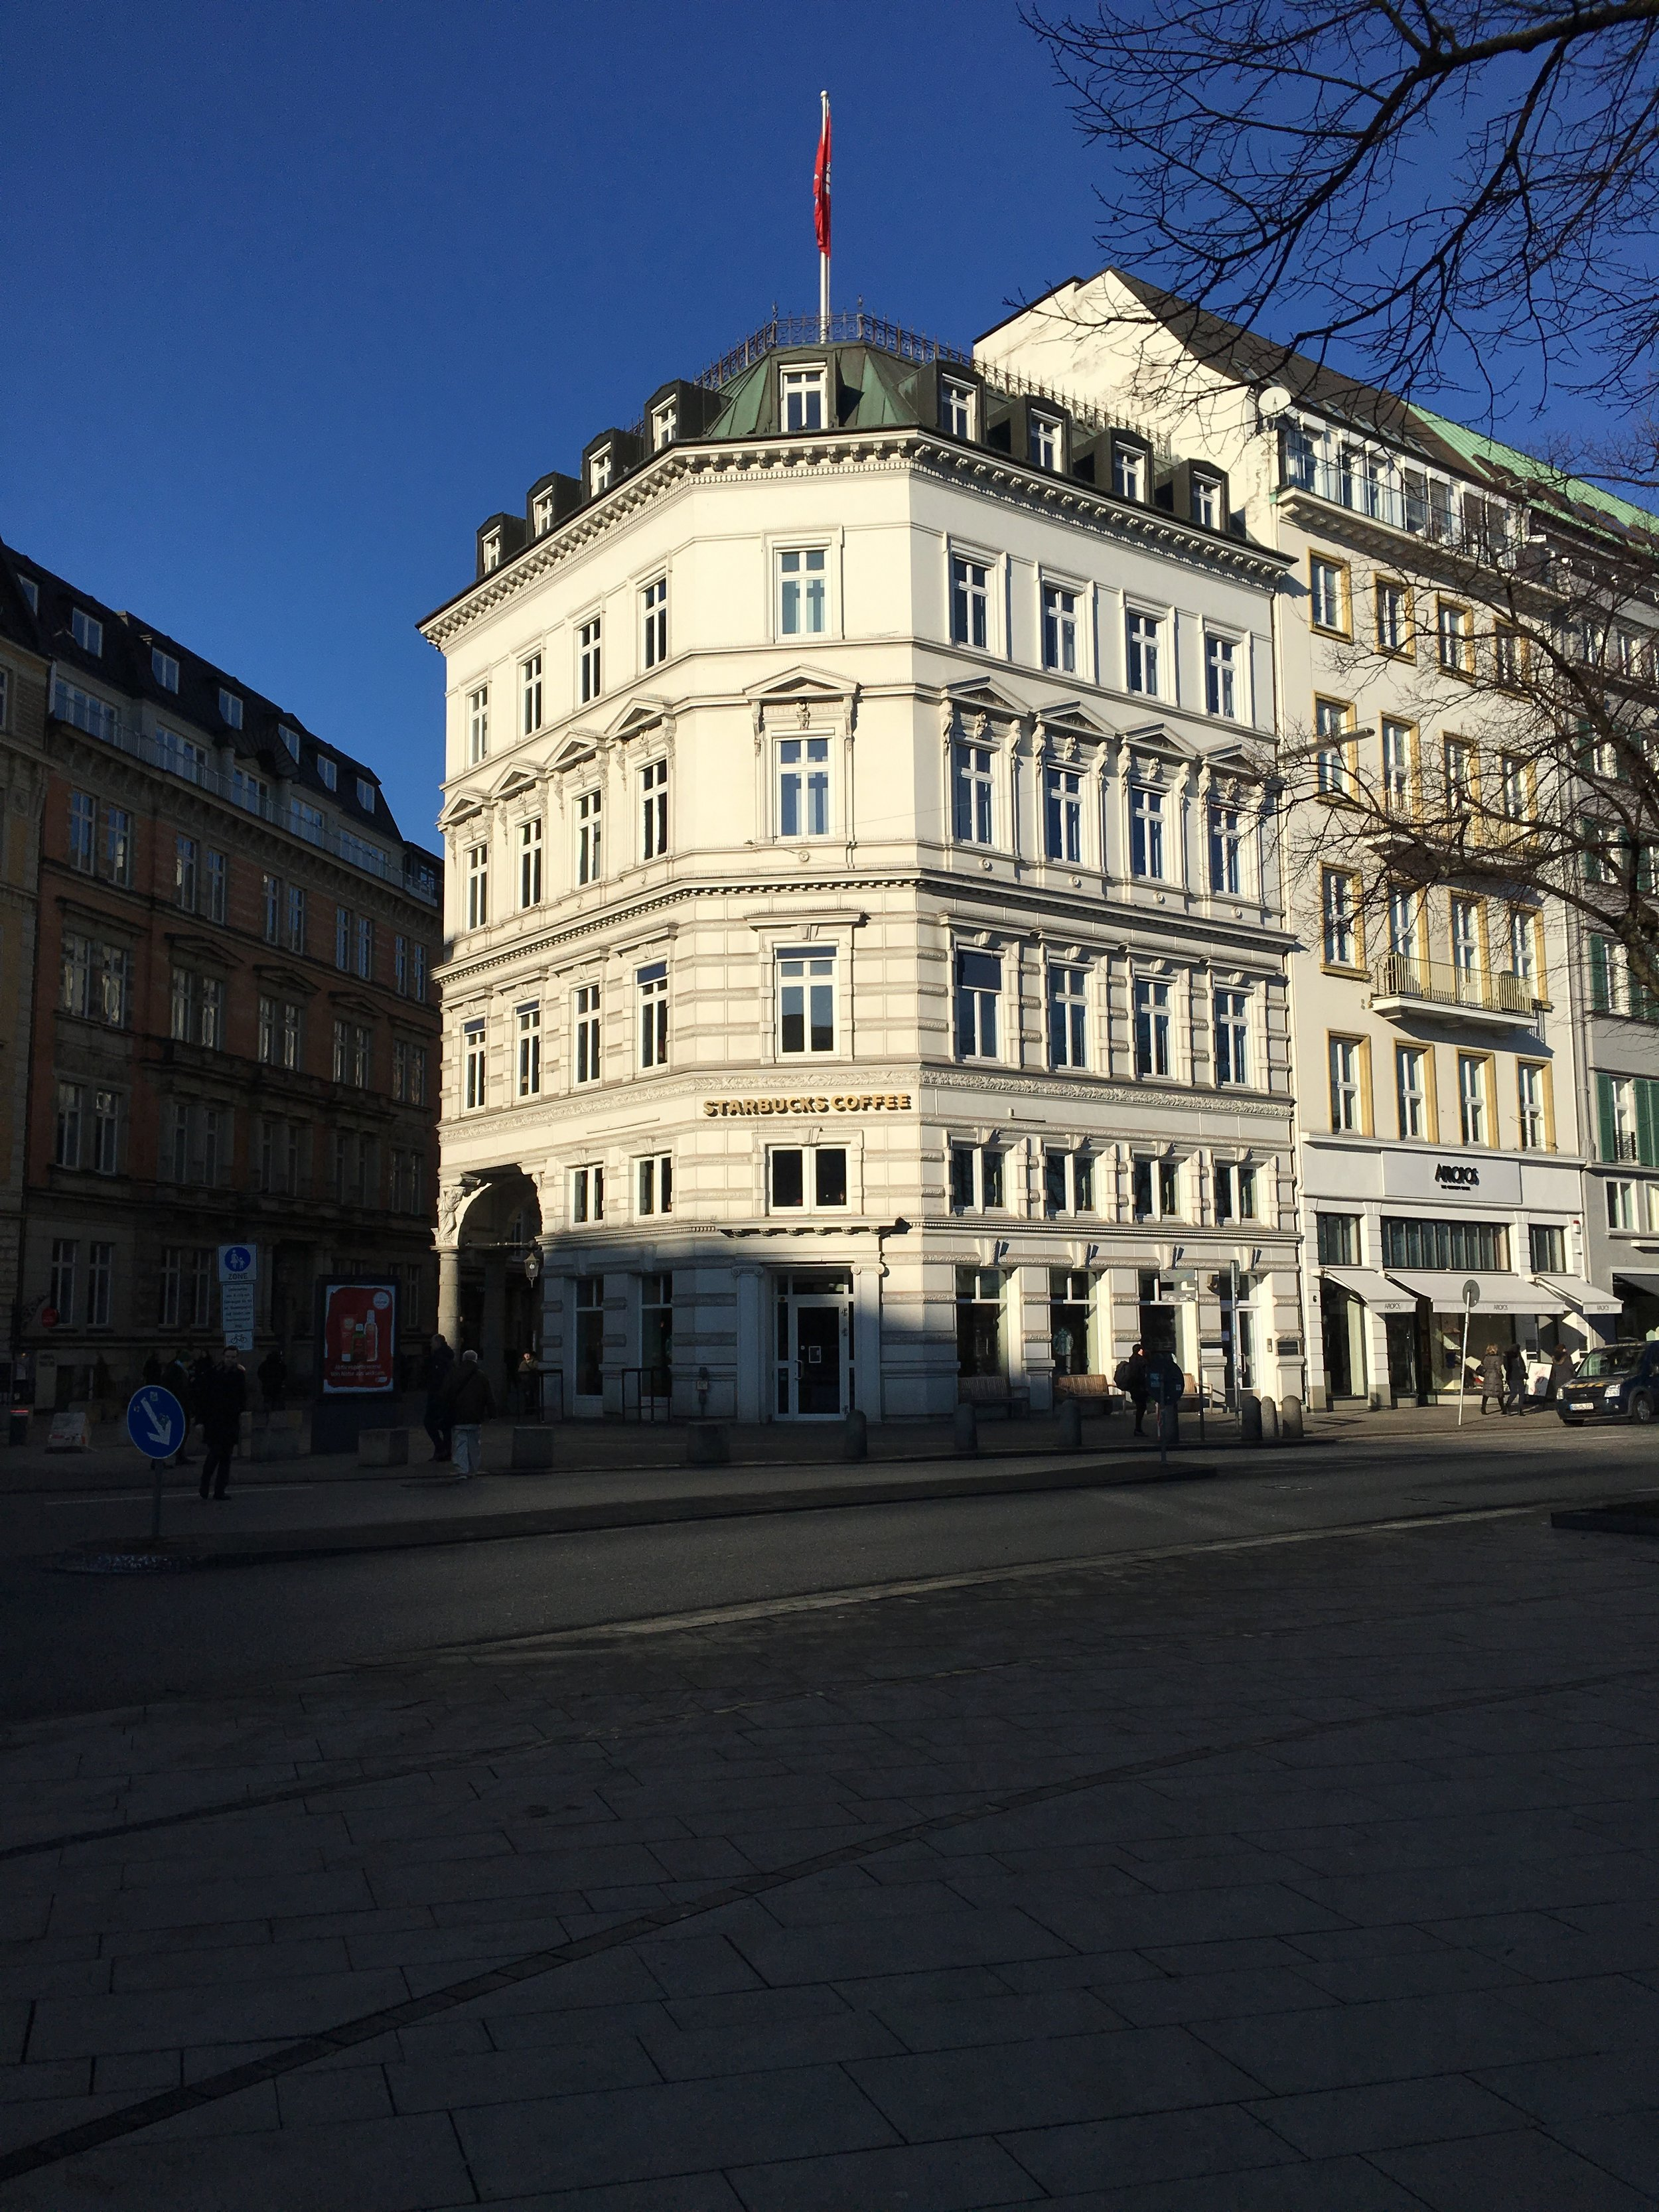 Office of the Peter Möhrle Foundation